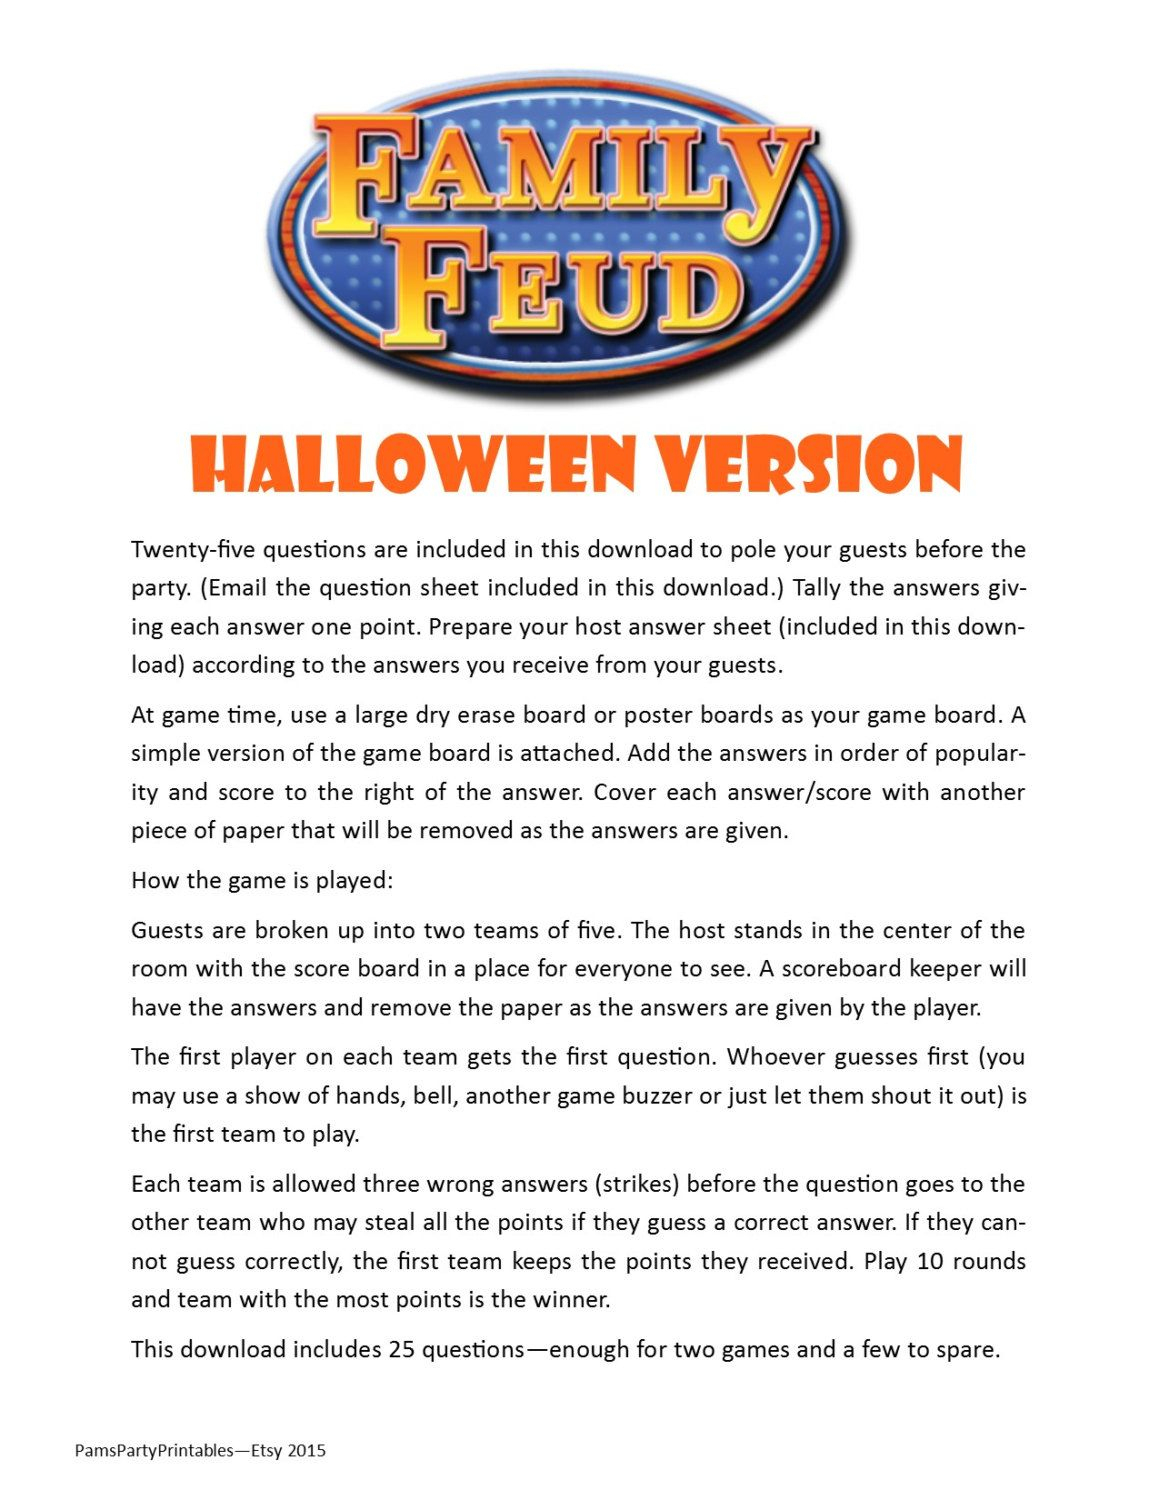 Halloween Friendly Feud 20 Questions And Answers - Printable Game - Free Printable Halloween Play Scripts